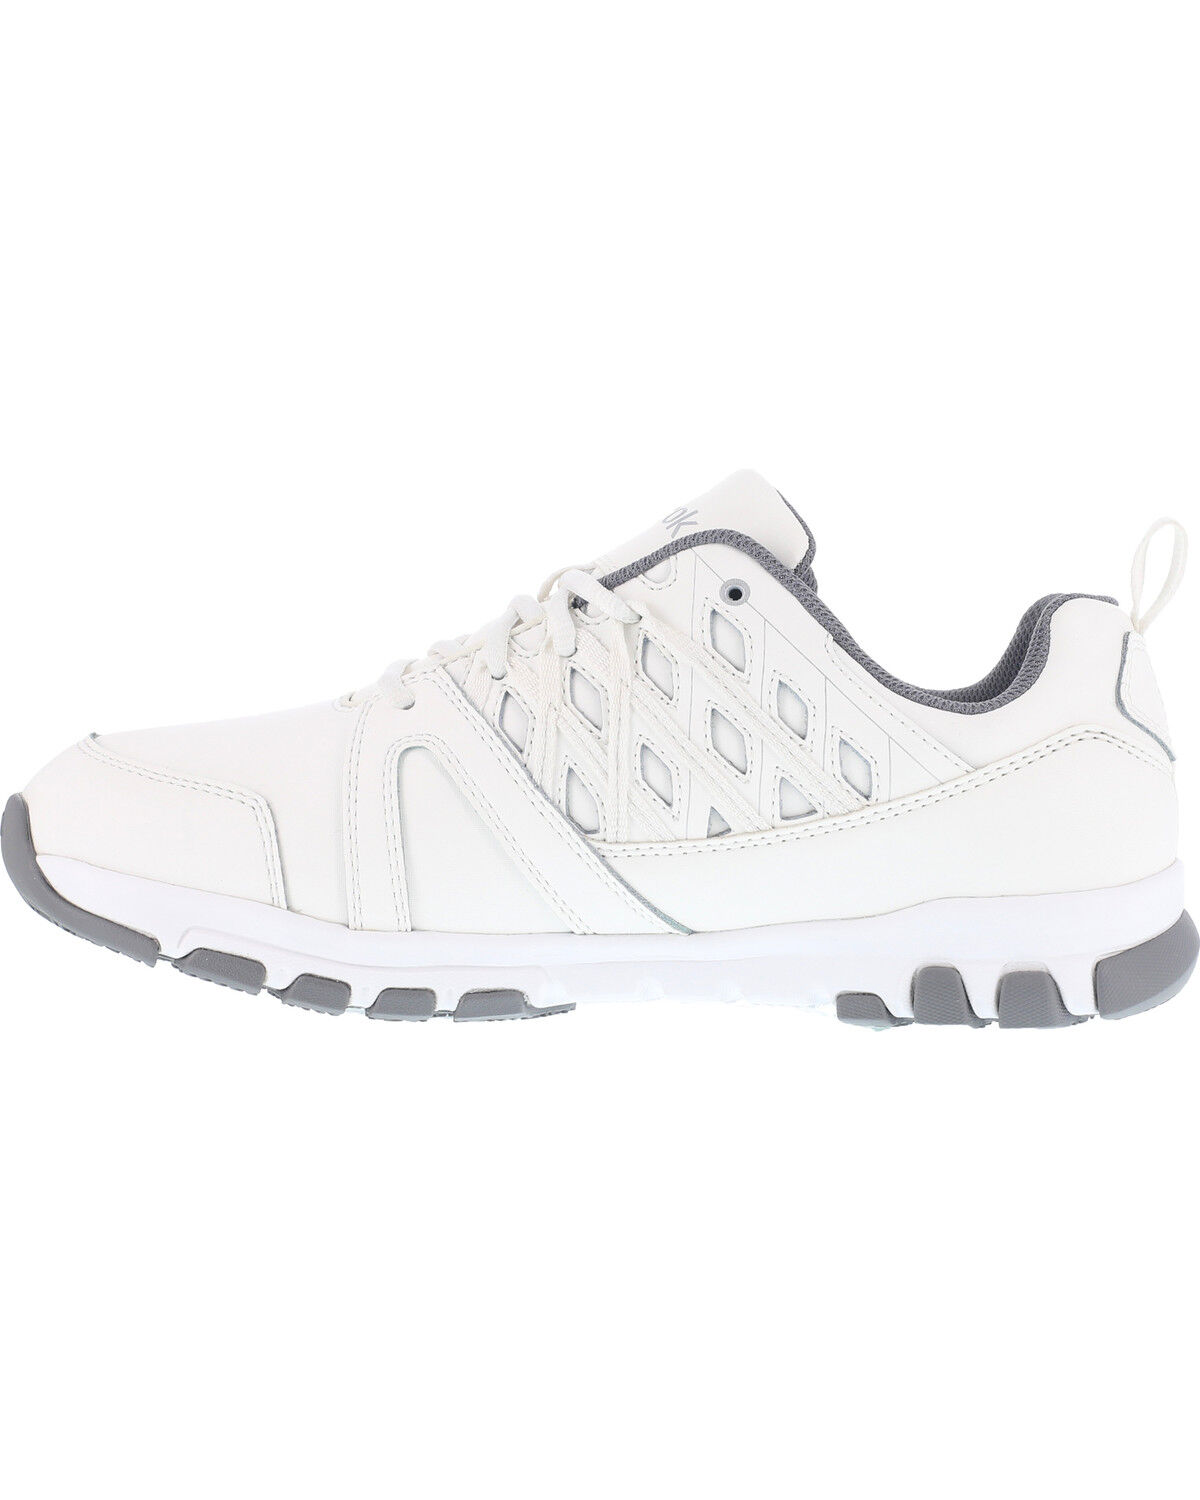 8d9aac6999b Cheap reebok oxford shoes Buy Online  OFF40% Discounted